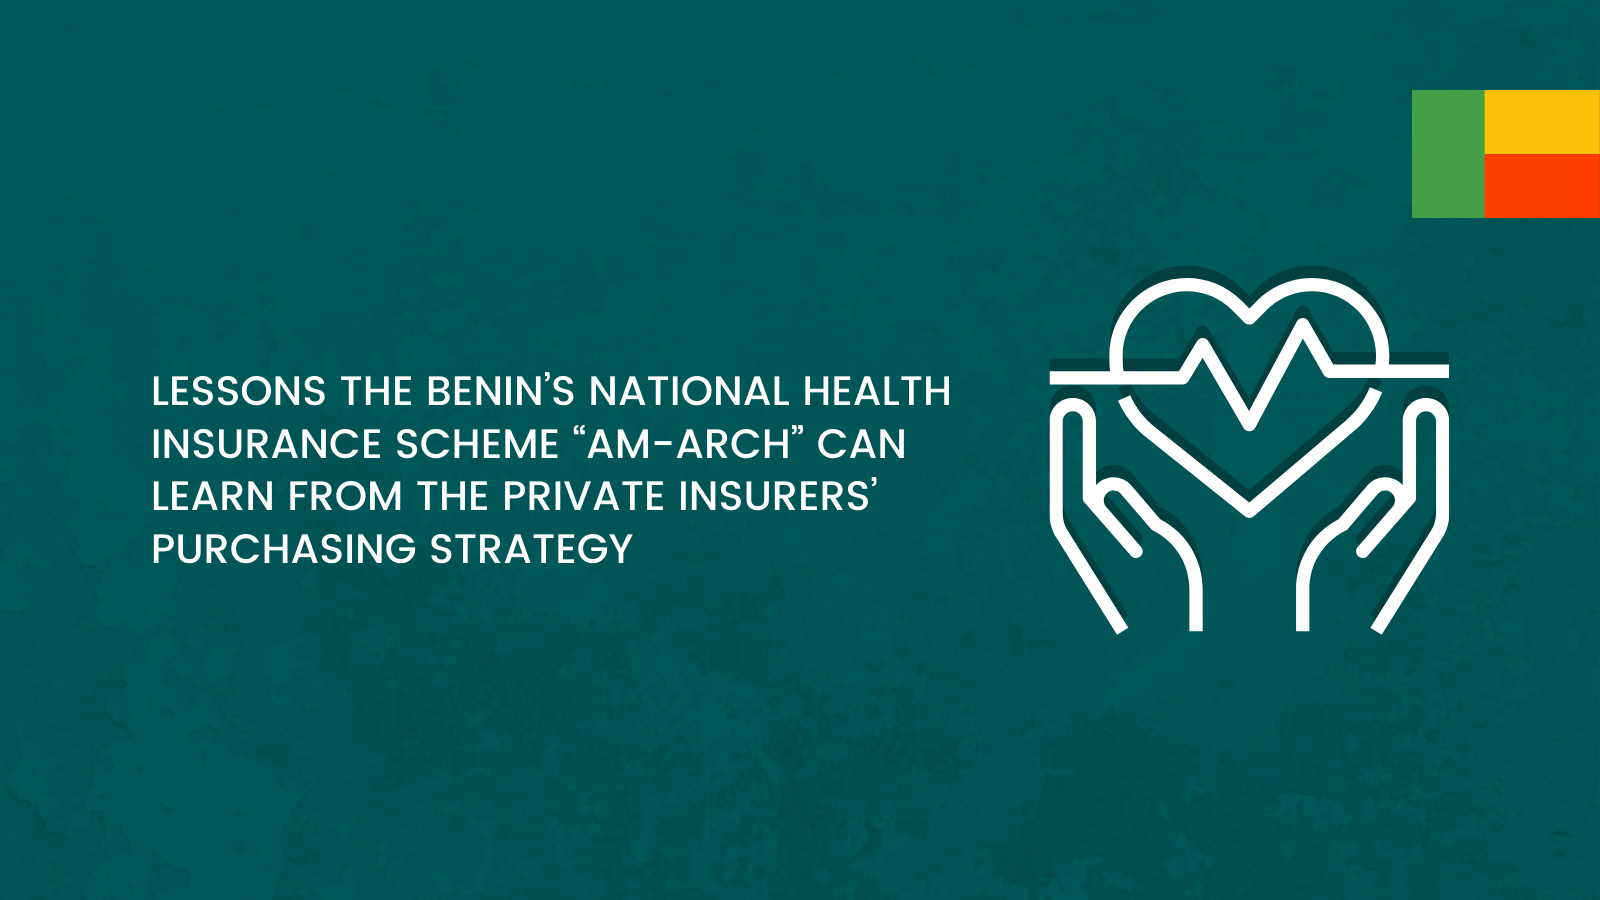 Lessons Benin's National Health Insurance Scheme Can Learn From the Private Insurers' Purchasing Strategy